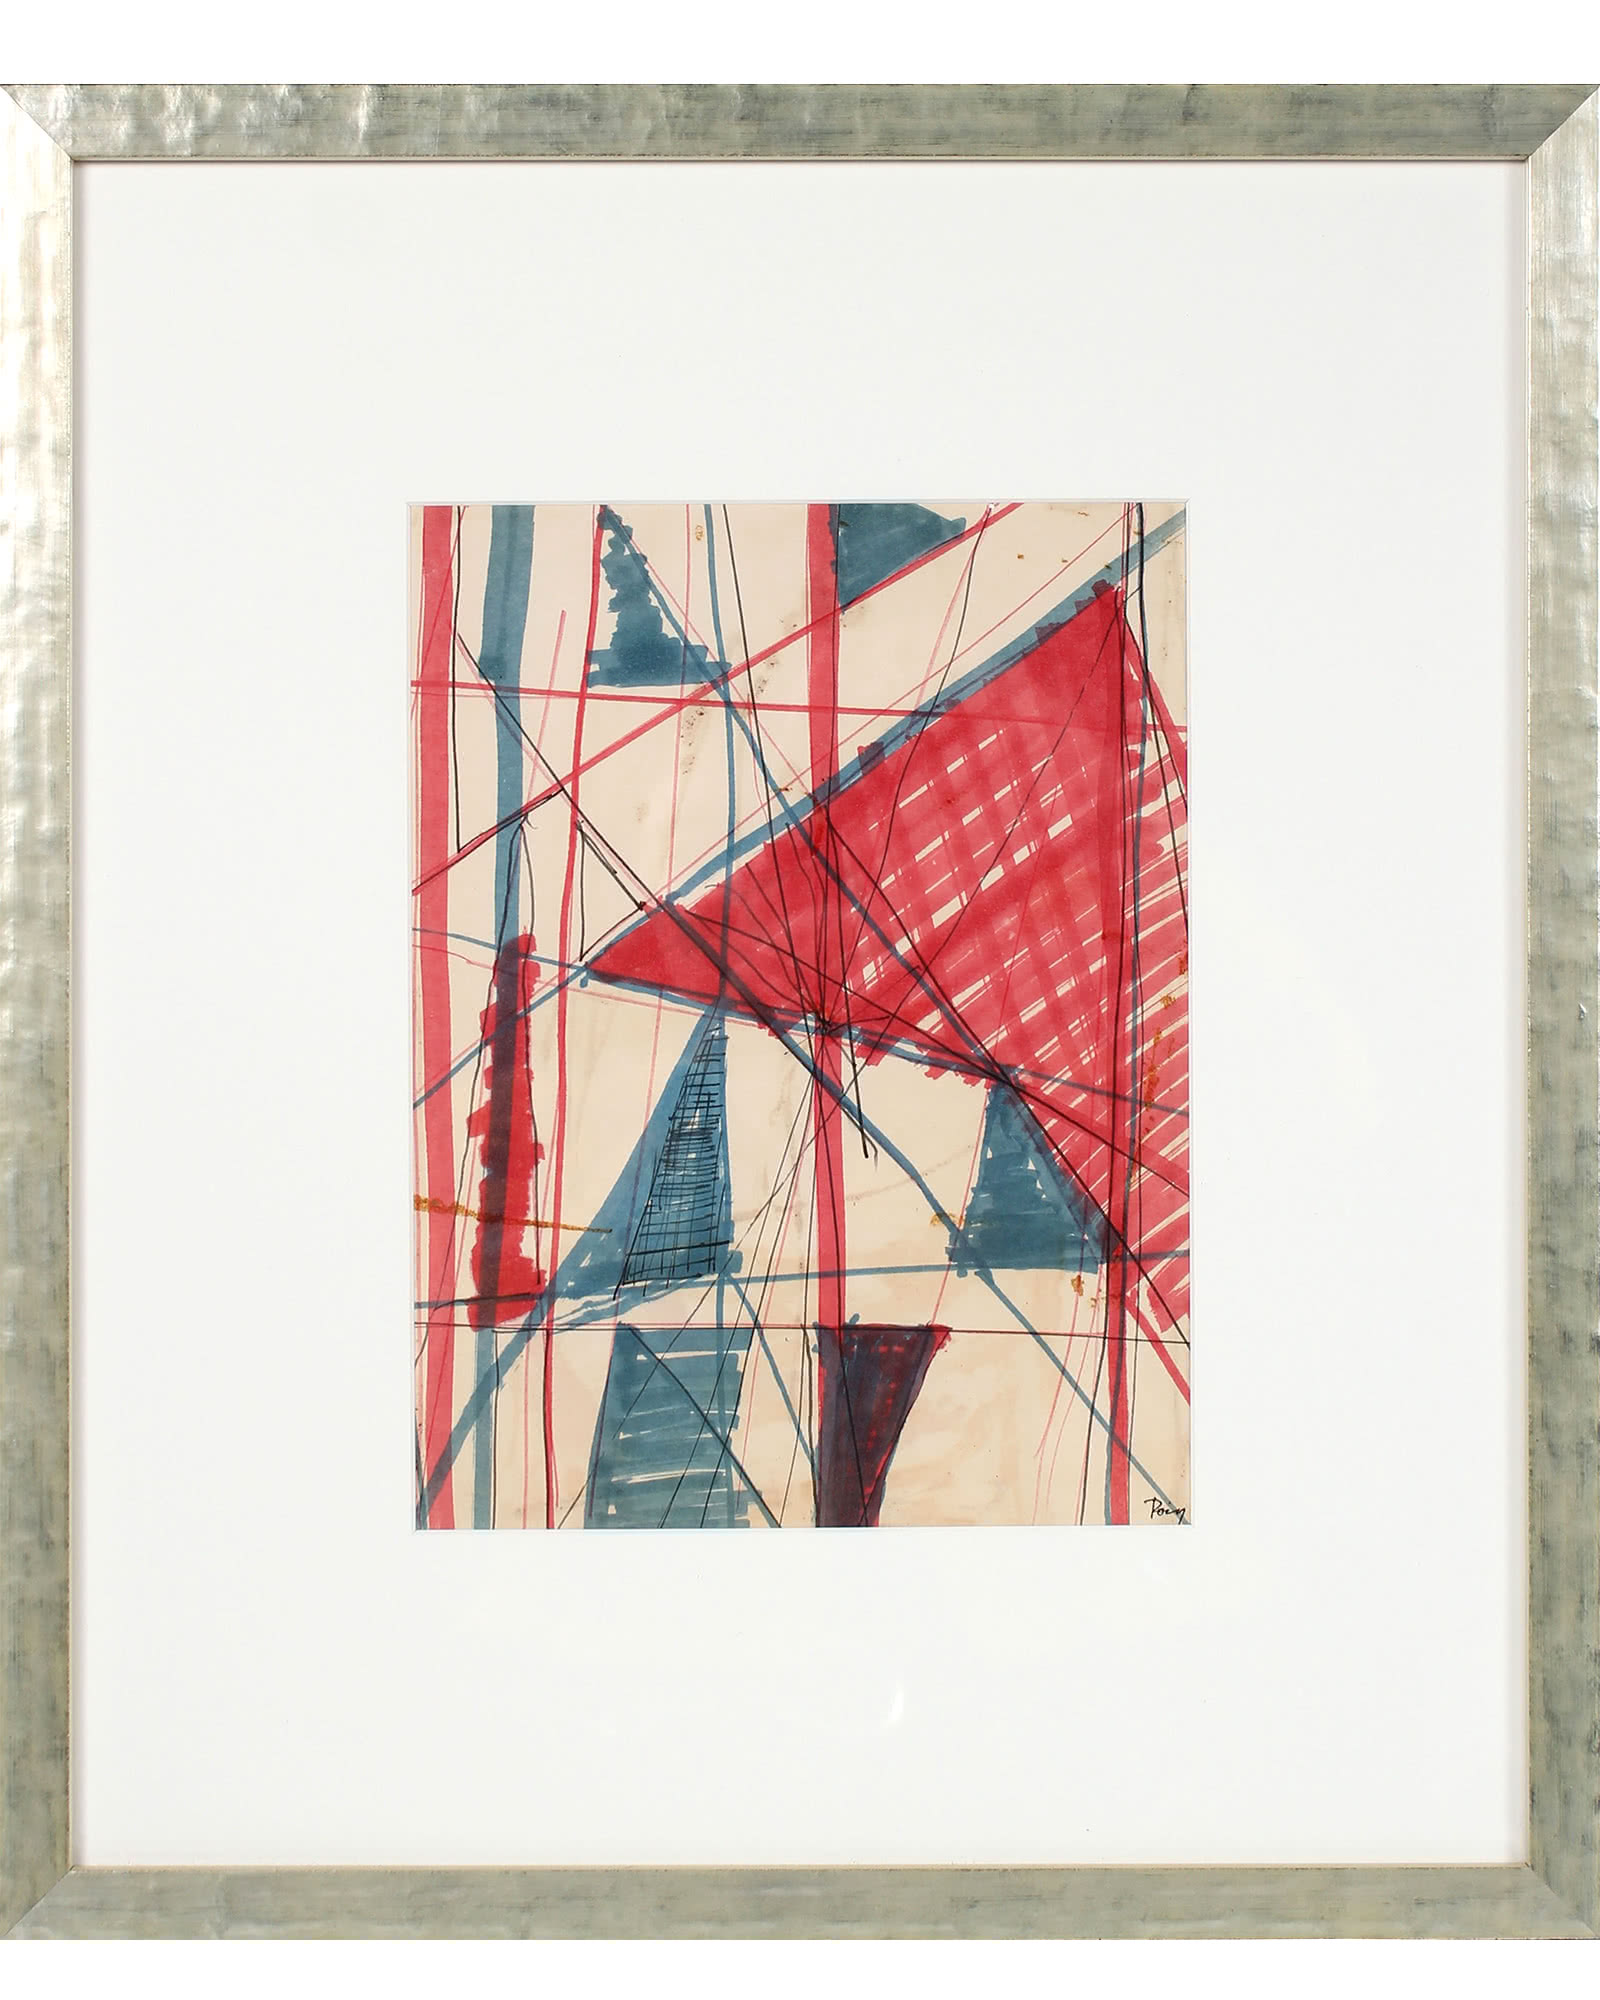 """Red & Blue Triangular Abstract"" by Raphael Roig,"